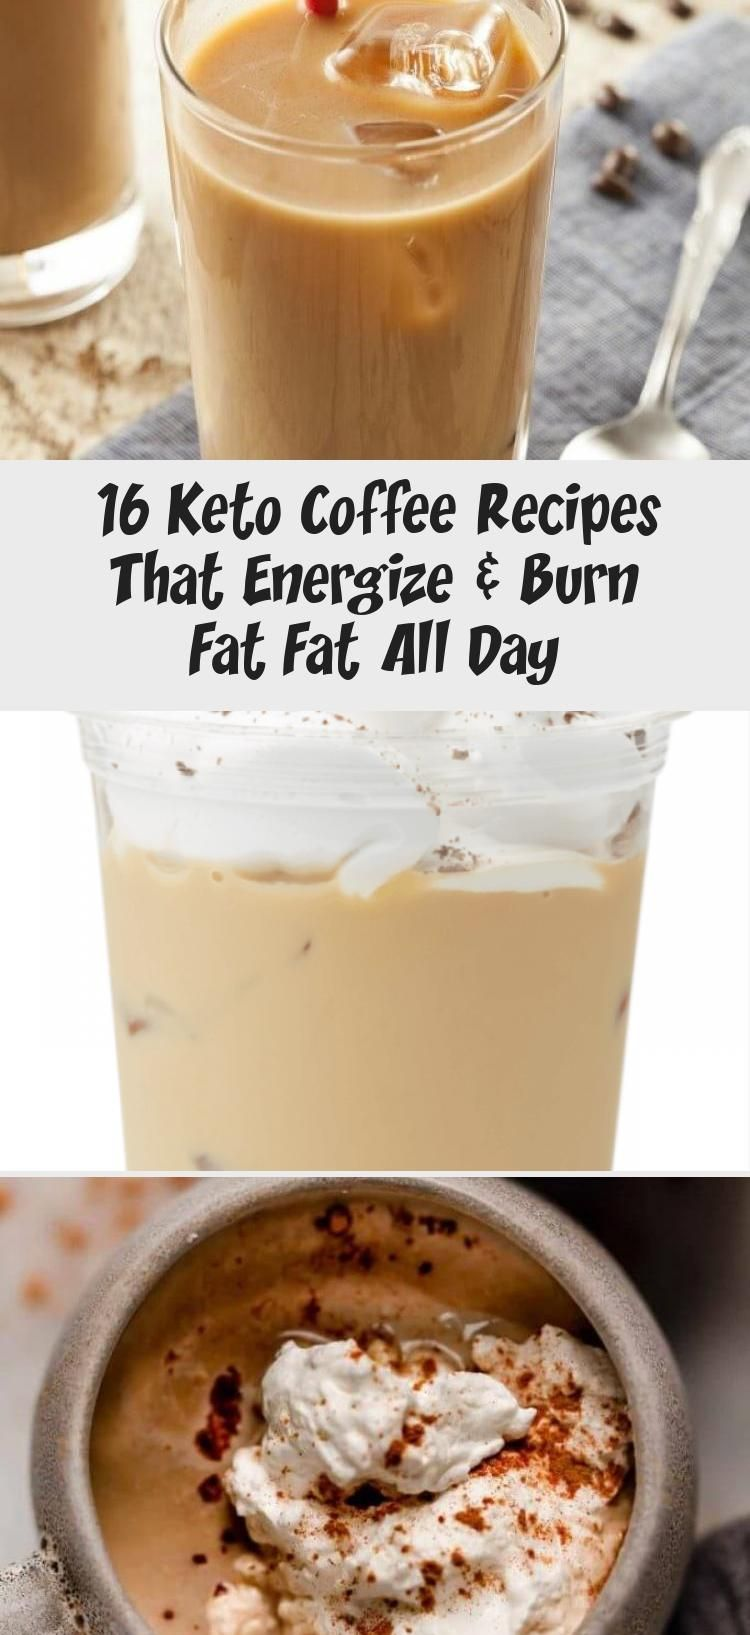 Looking for easy keto coffee recipes to make at home? Check out this collection of easy keto coffee drinks! From the best Bulletproof Coffee with MCT or coconut oil to your favorite Keto Starbucks recipes you'll find a fabulous low carb coffee drink or Keto frappucino to jumpstart your weight loss, fat burning & focus-even on busy mornings! #keto #ketorecipes #sugarfree #lowcarb #ketodrinks #FoodandDrinkNoodles #FoodandDrinkHomemade #FoodandDrinkMexican #FoodandDrinkPairing #FoodandDrinkMagazine #ketofrappucinostarbucks